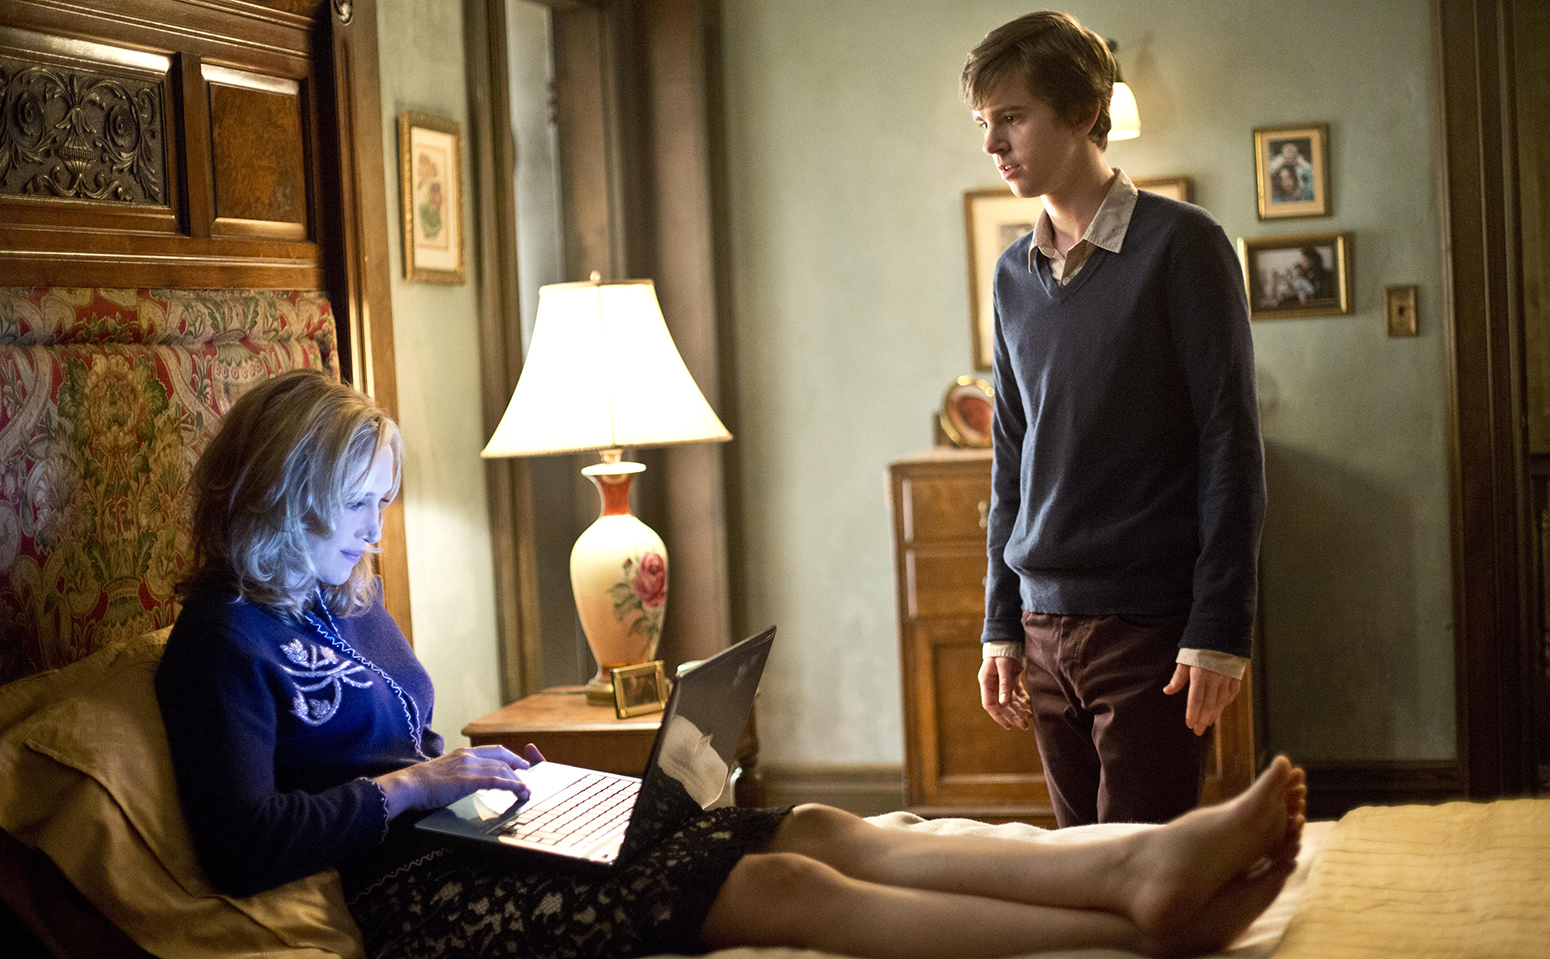 A scene from Bates Motel.